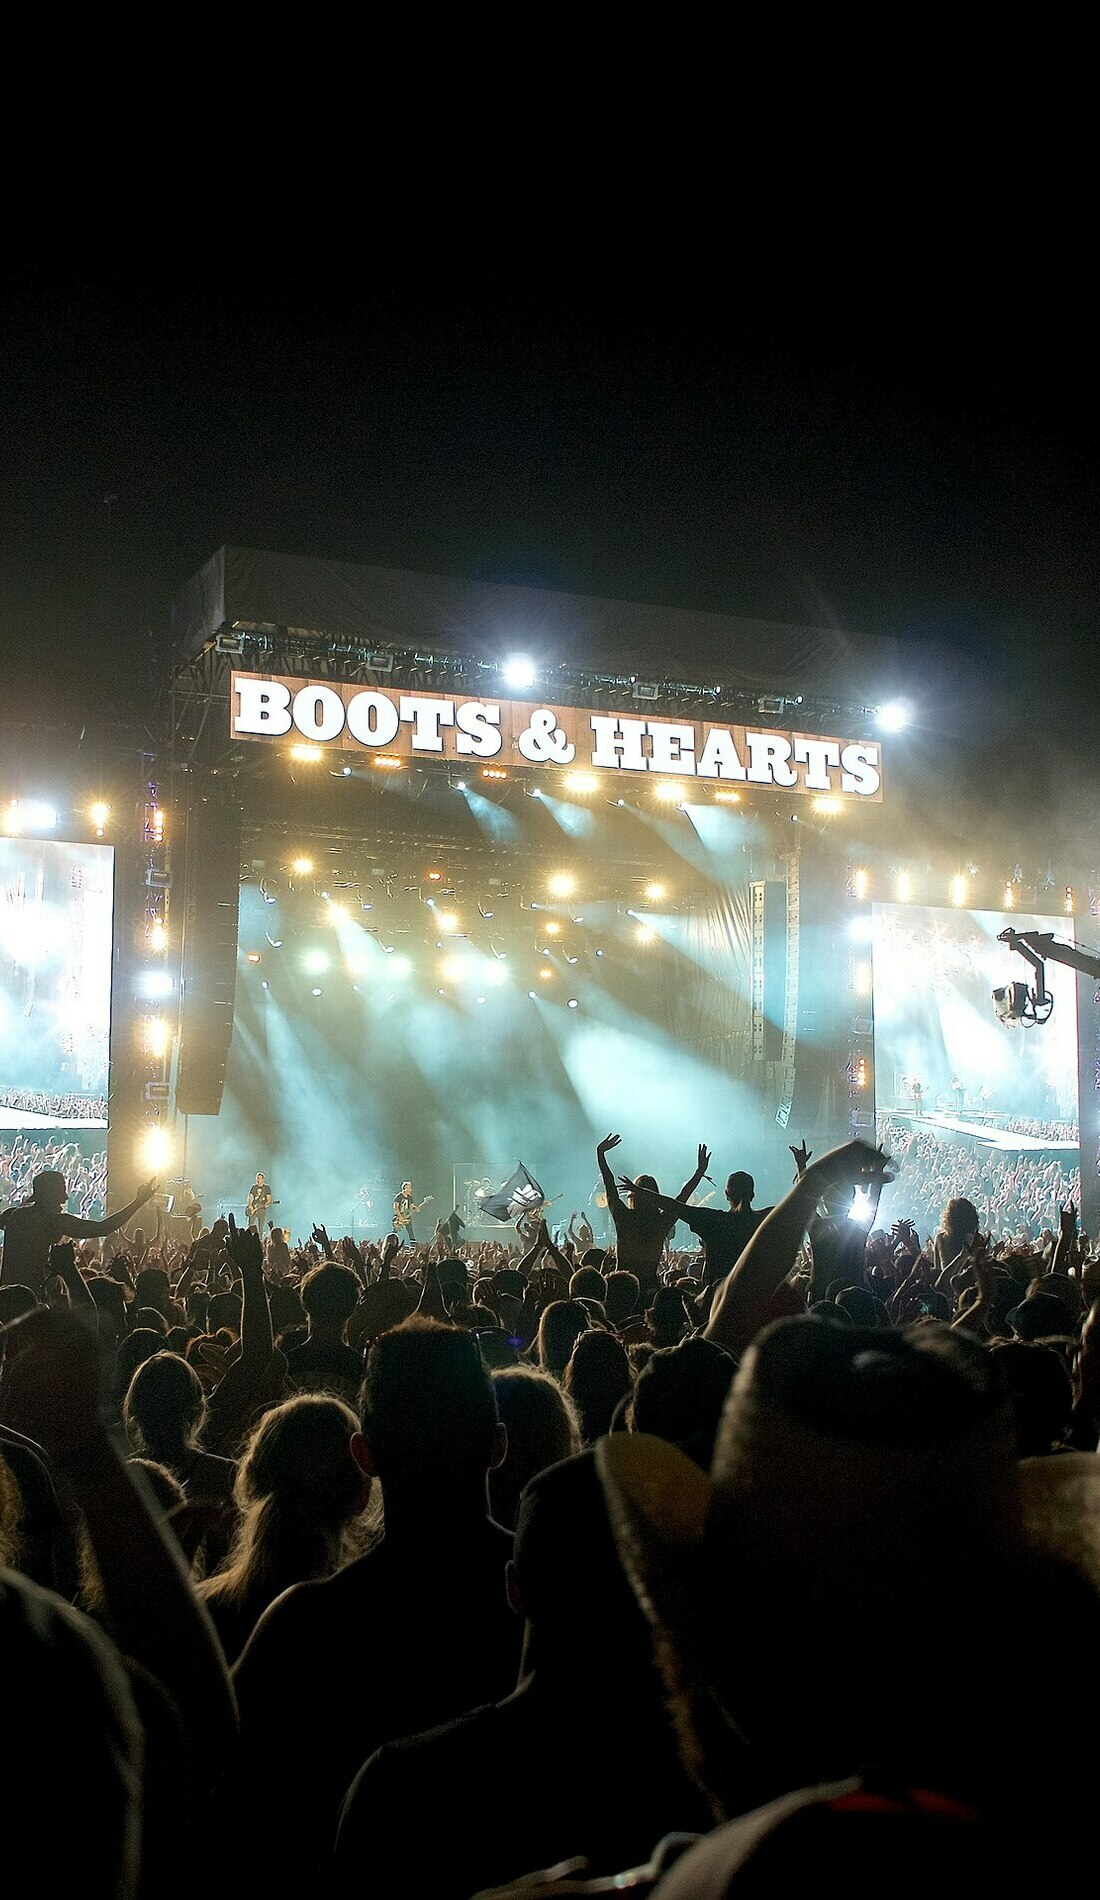 A Boots and Hearts Music Festival live event